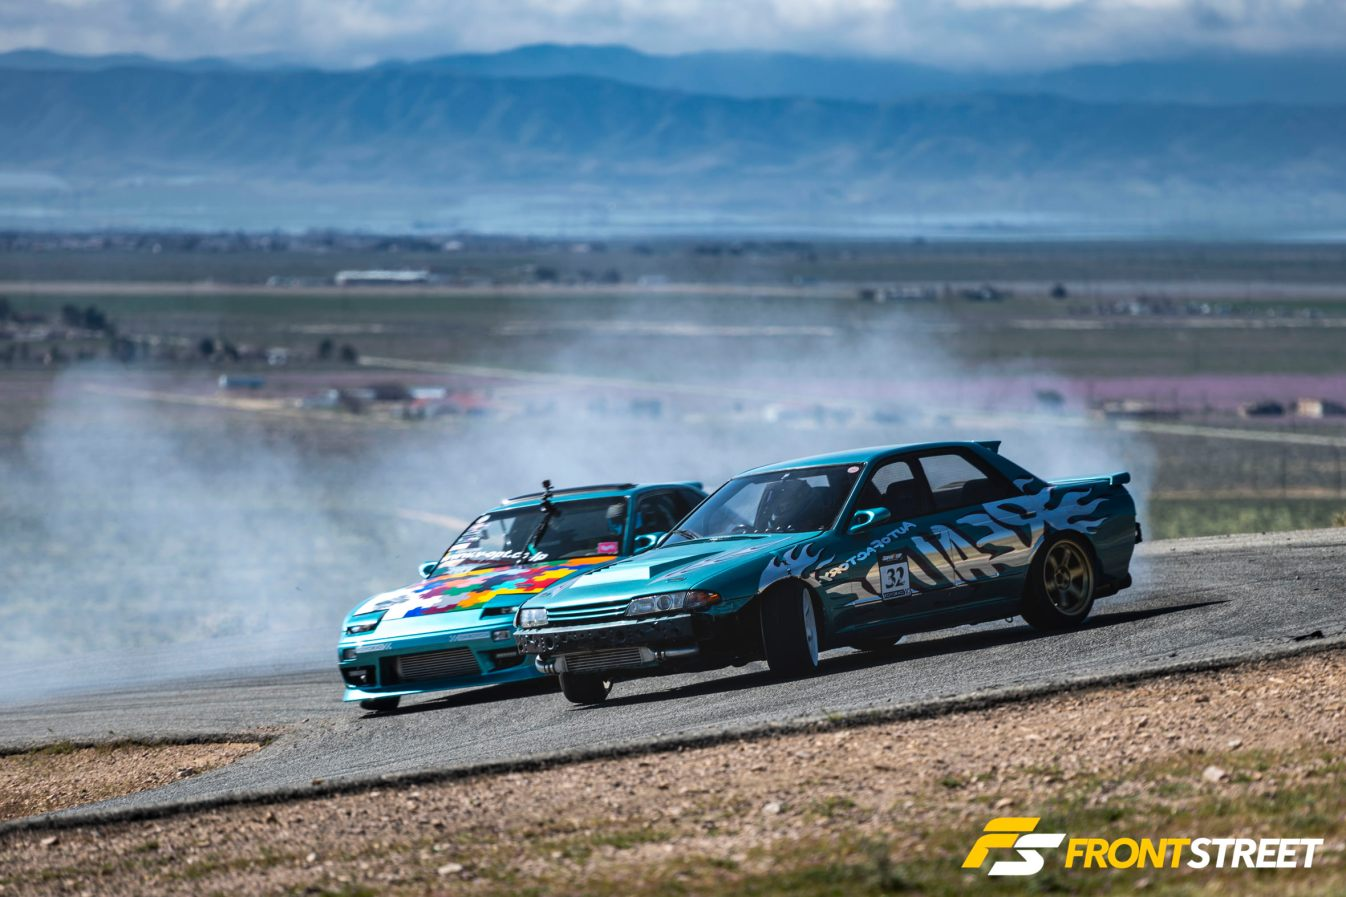 SoCal's Jimmy Up Matsuri Welcomes Grassroots Drifting With A Twist